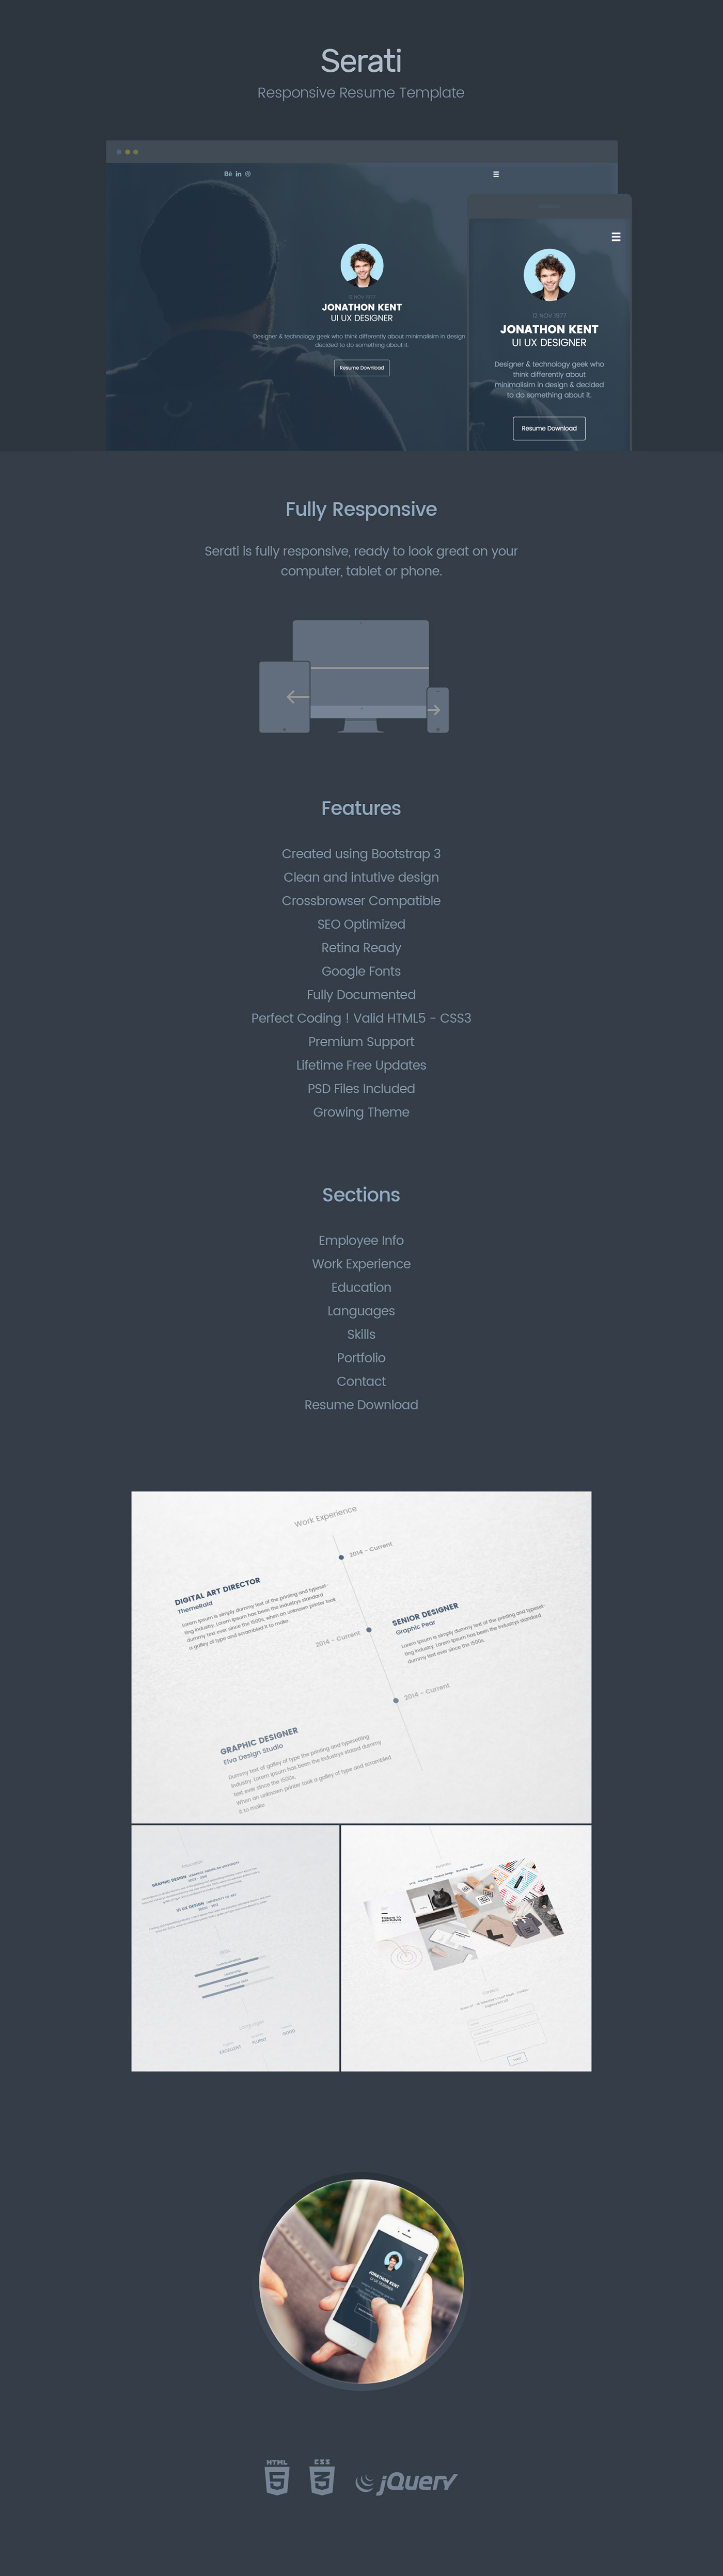 Serati   Free Html Resume Template On Behance  Resume Html Template